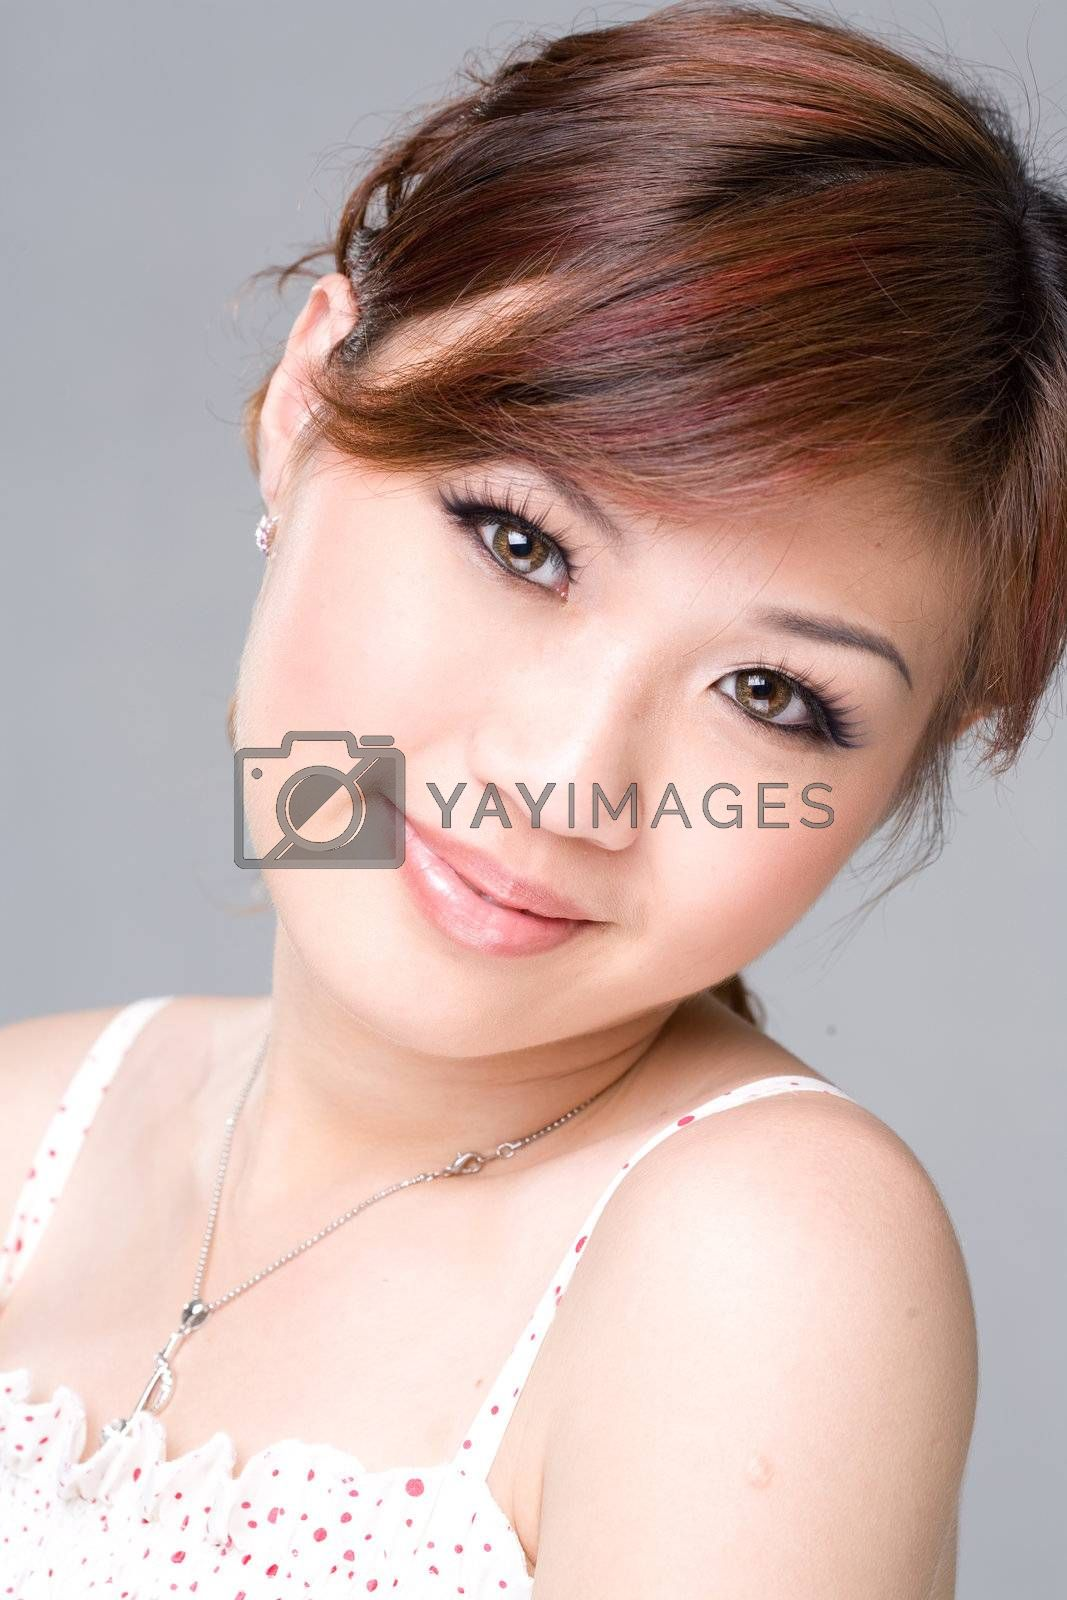 youthful sweet smile of an asian girl